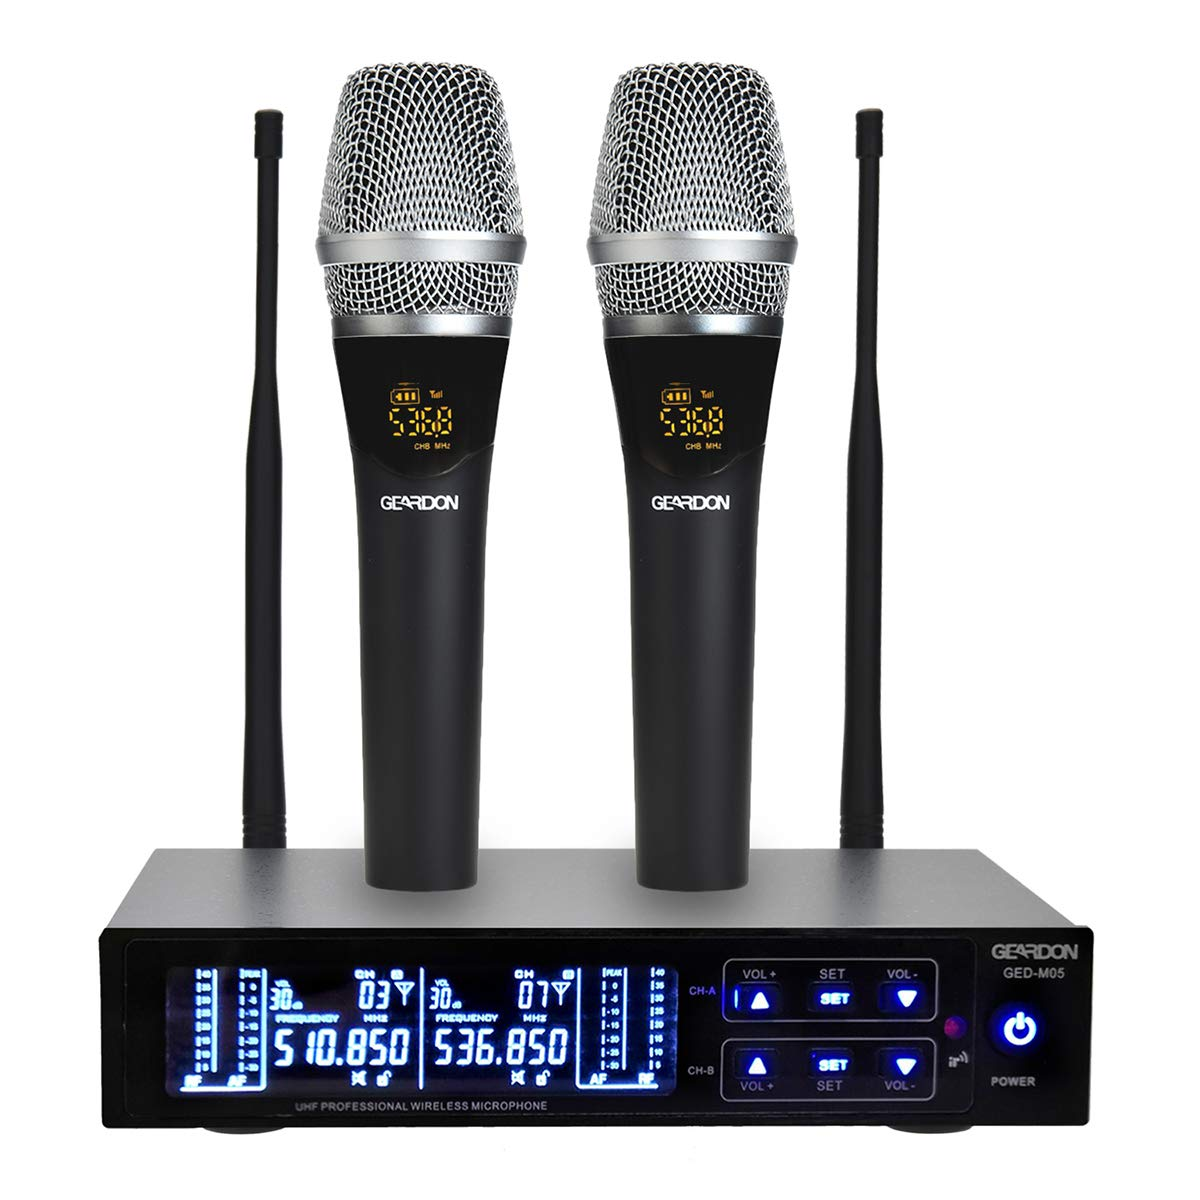 Geardon Pro Rechargeable Dual Wireless Microphone System, 200 Channel UHF Wireless Mic Set with 250ft Long Range Professional Performance, 12hours Battery Continuous Use for Church/Karaoke/DJ